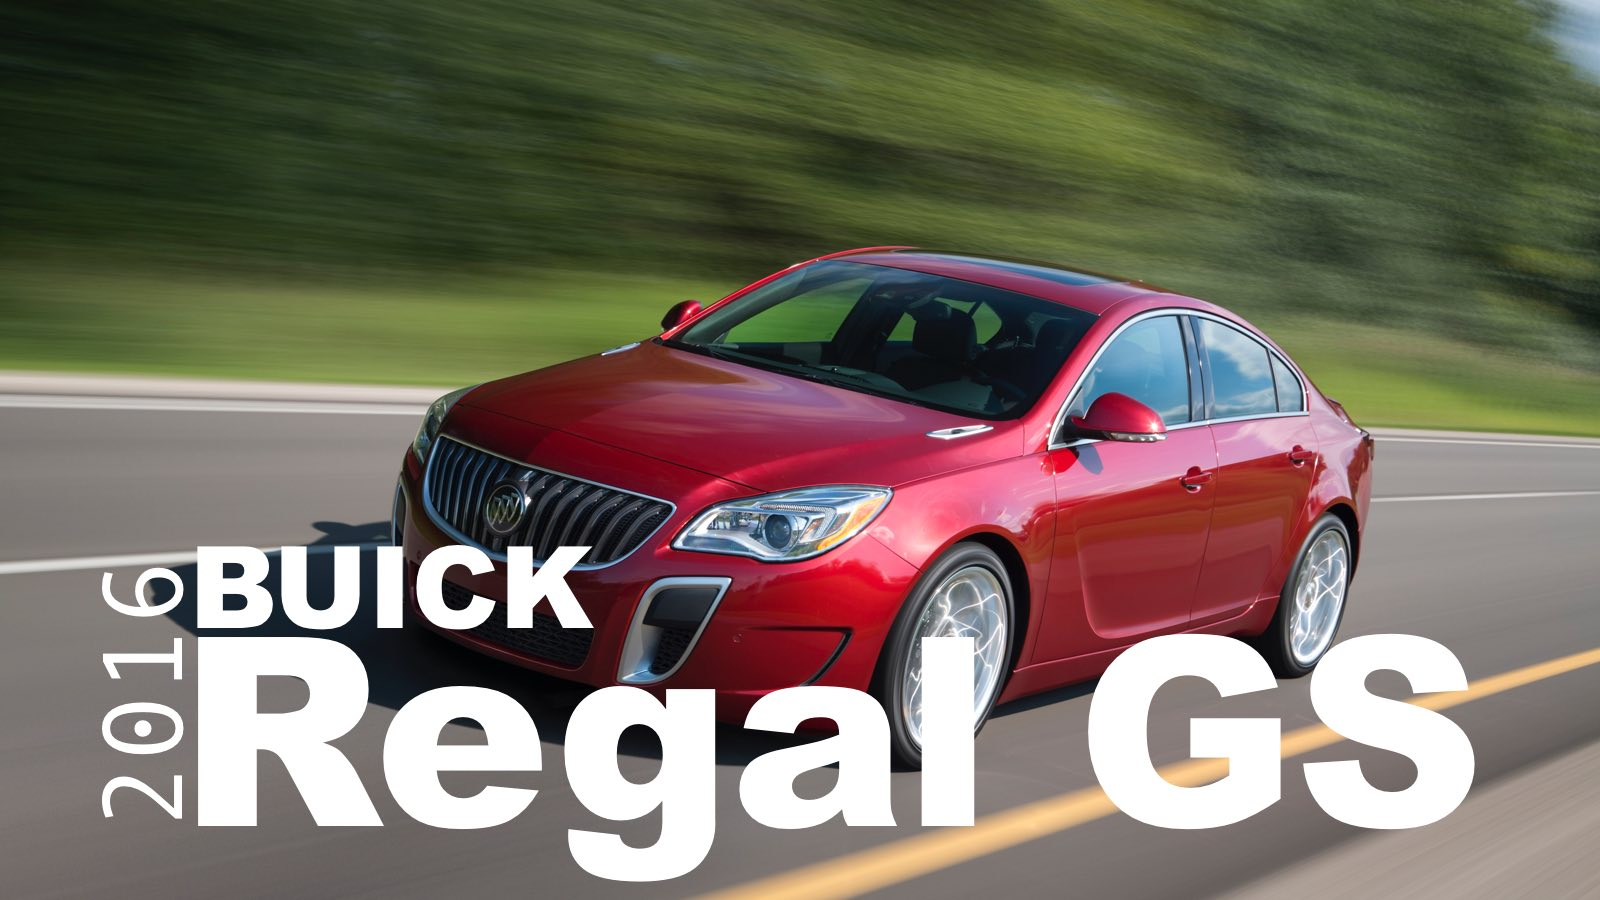 2016 Buick Regal GS: It's Good…And Could Be Better